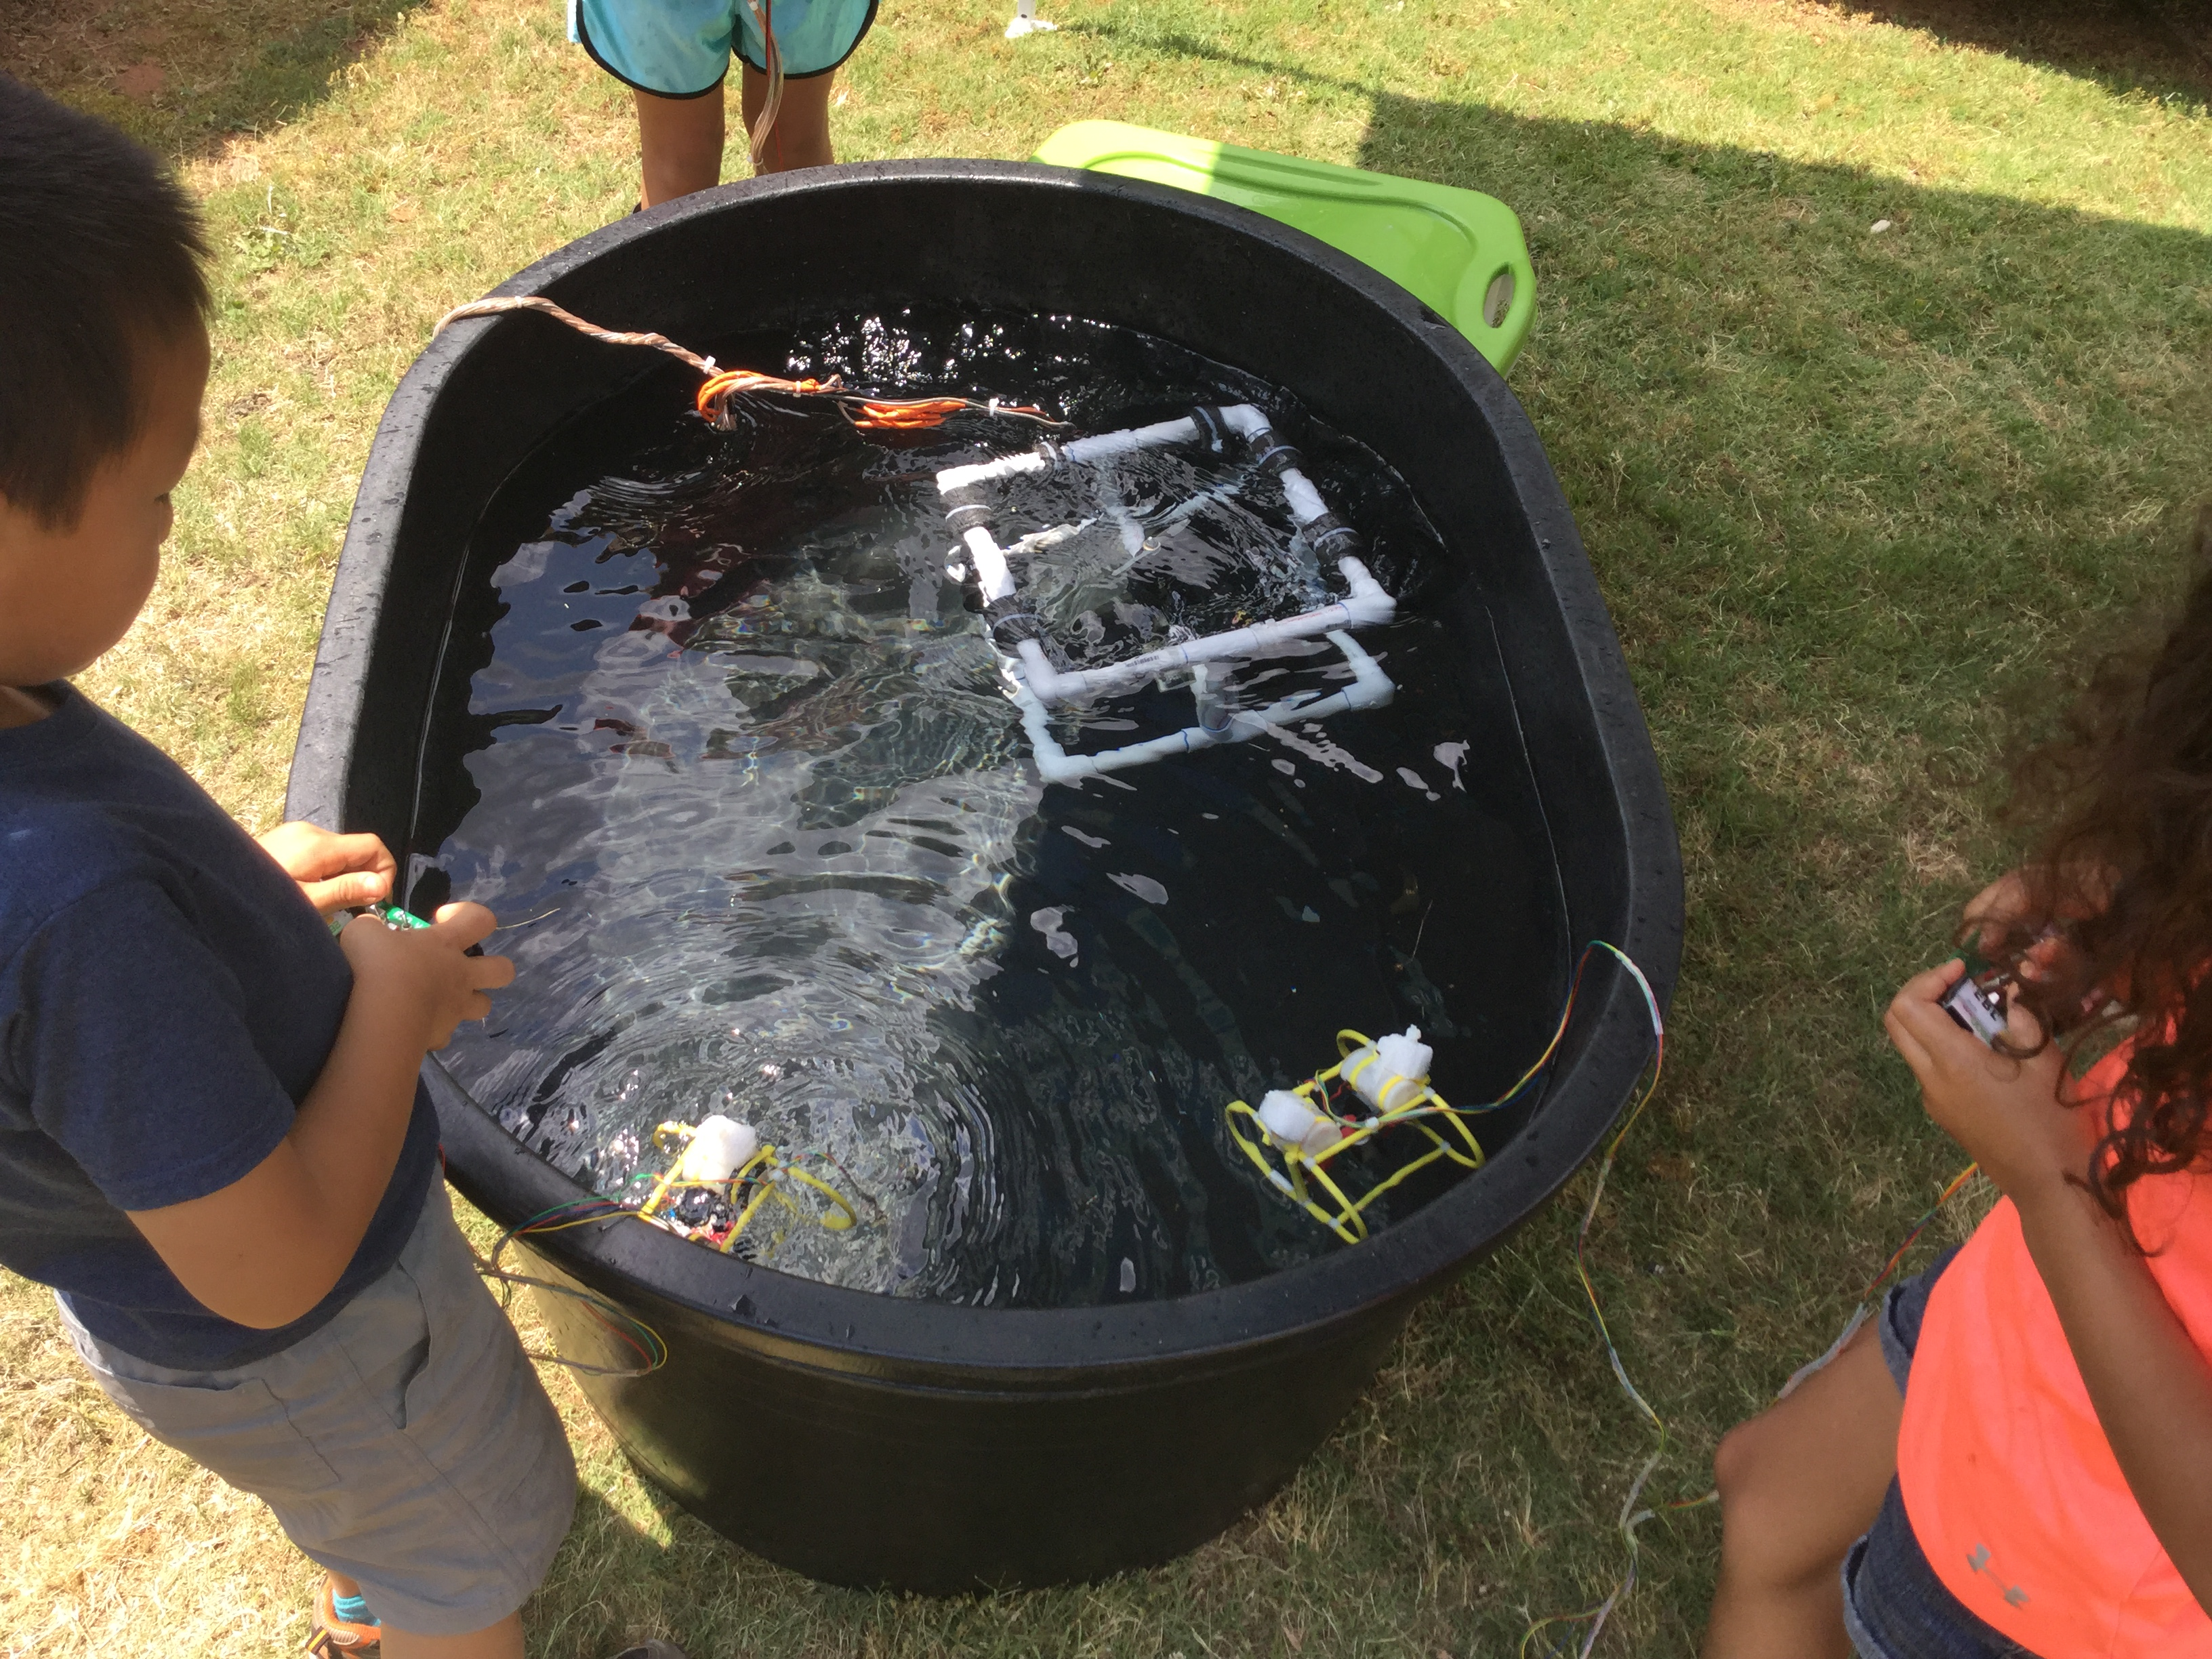 <div style='color:#000000;'><br /><br /><h2>2016 Oconee Primary School visit. Students driving the model ROVs (Remotely Operated Vehicles) that we use for demonstration.</h2>(c) ECOGIG</div>